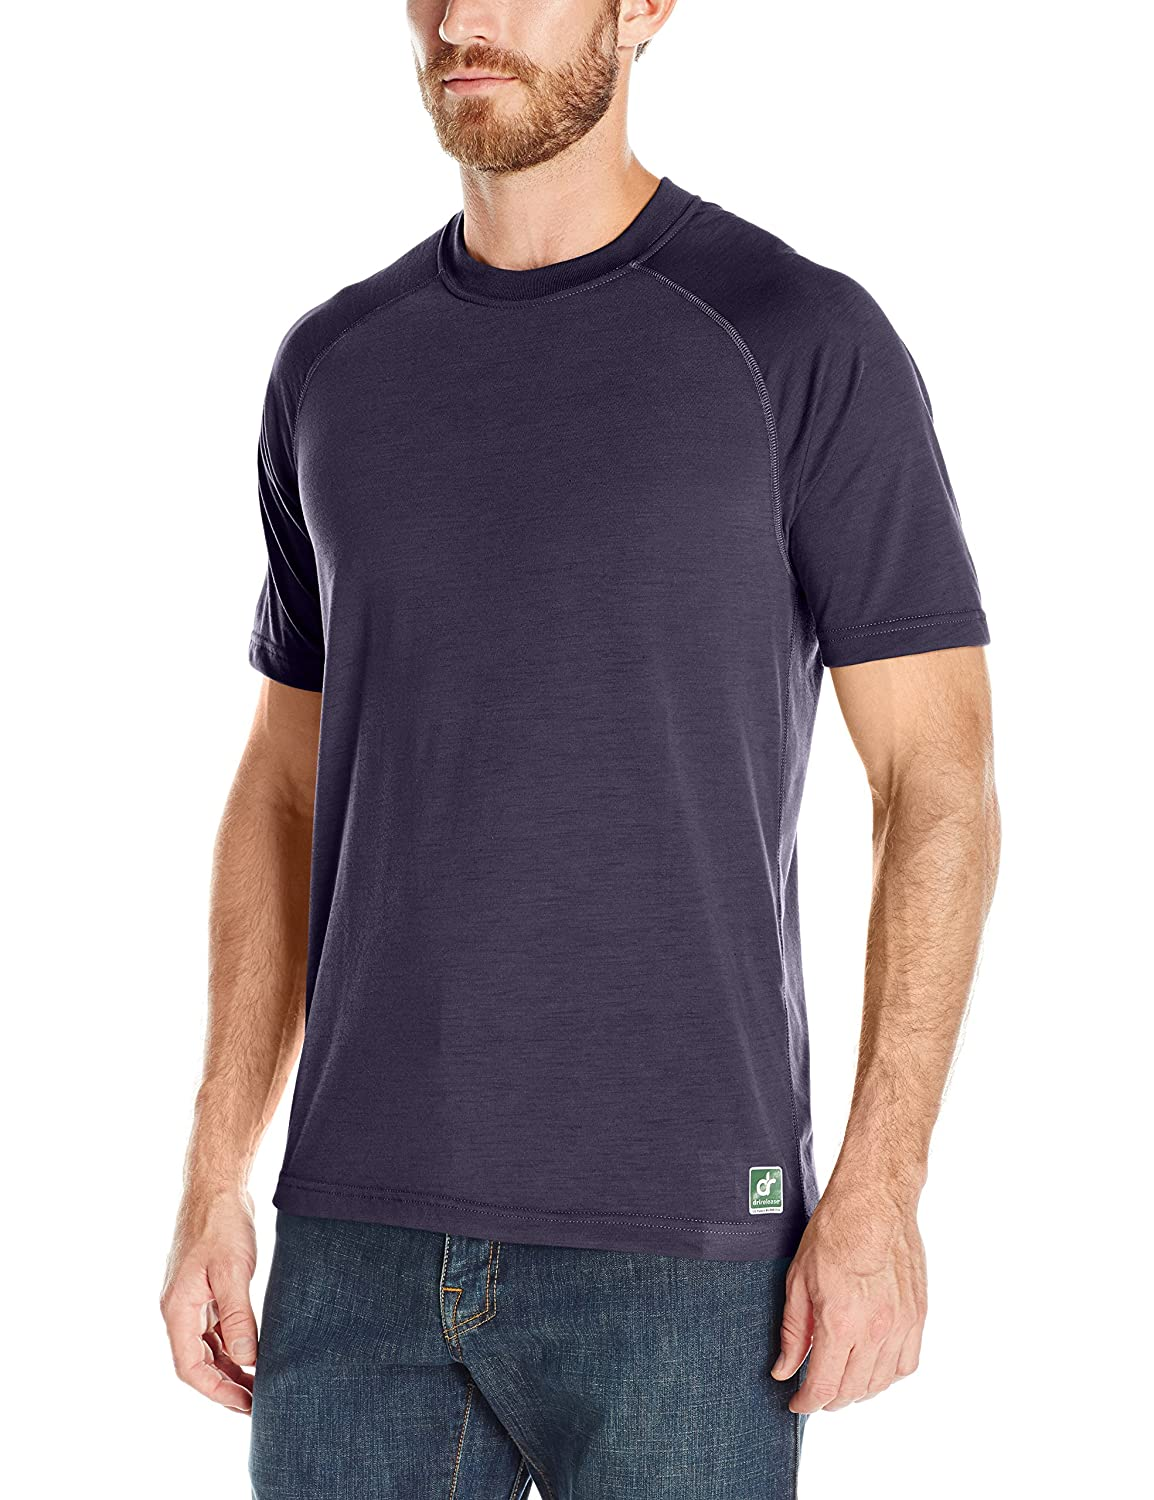 TRU-SPEC Men's Dri-Release Jersey T-Shirt Atlanco 11951-P